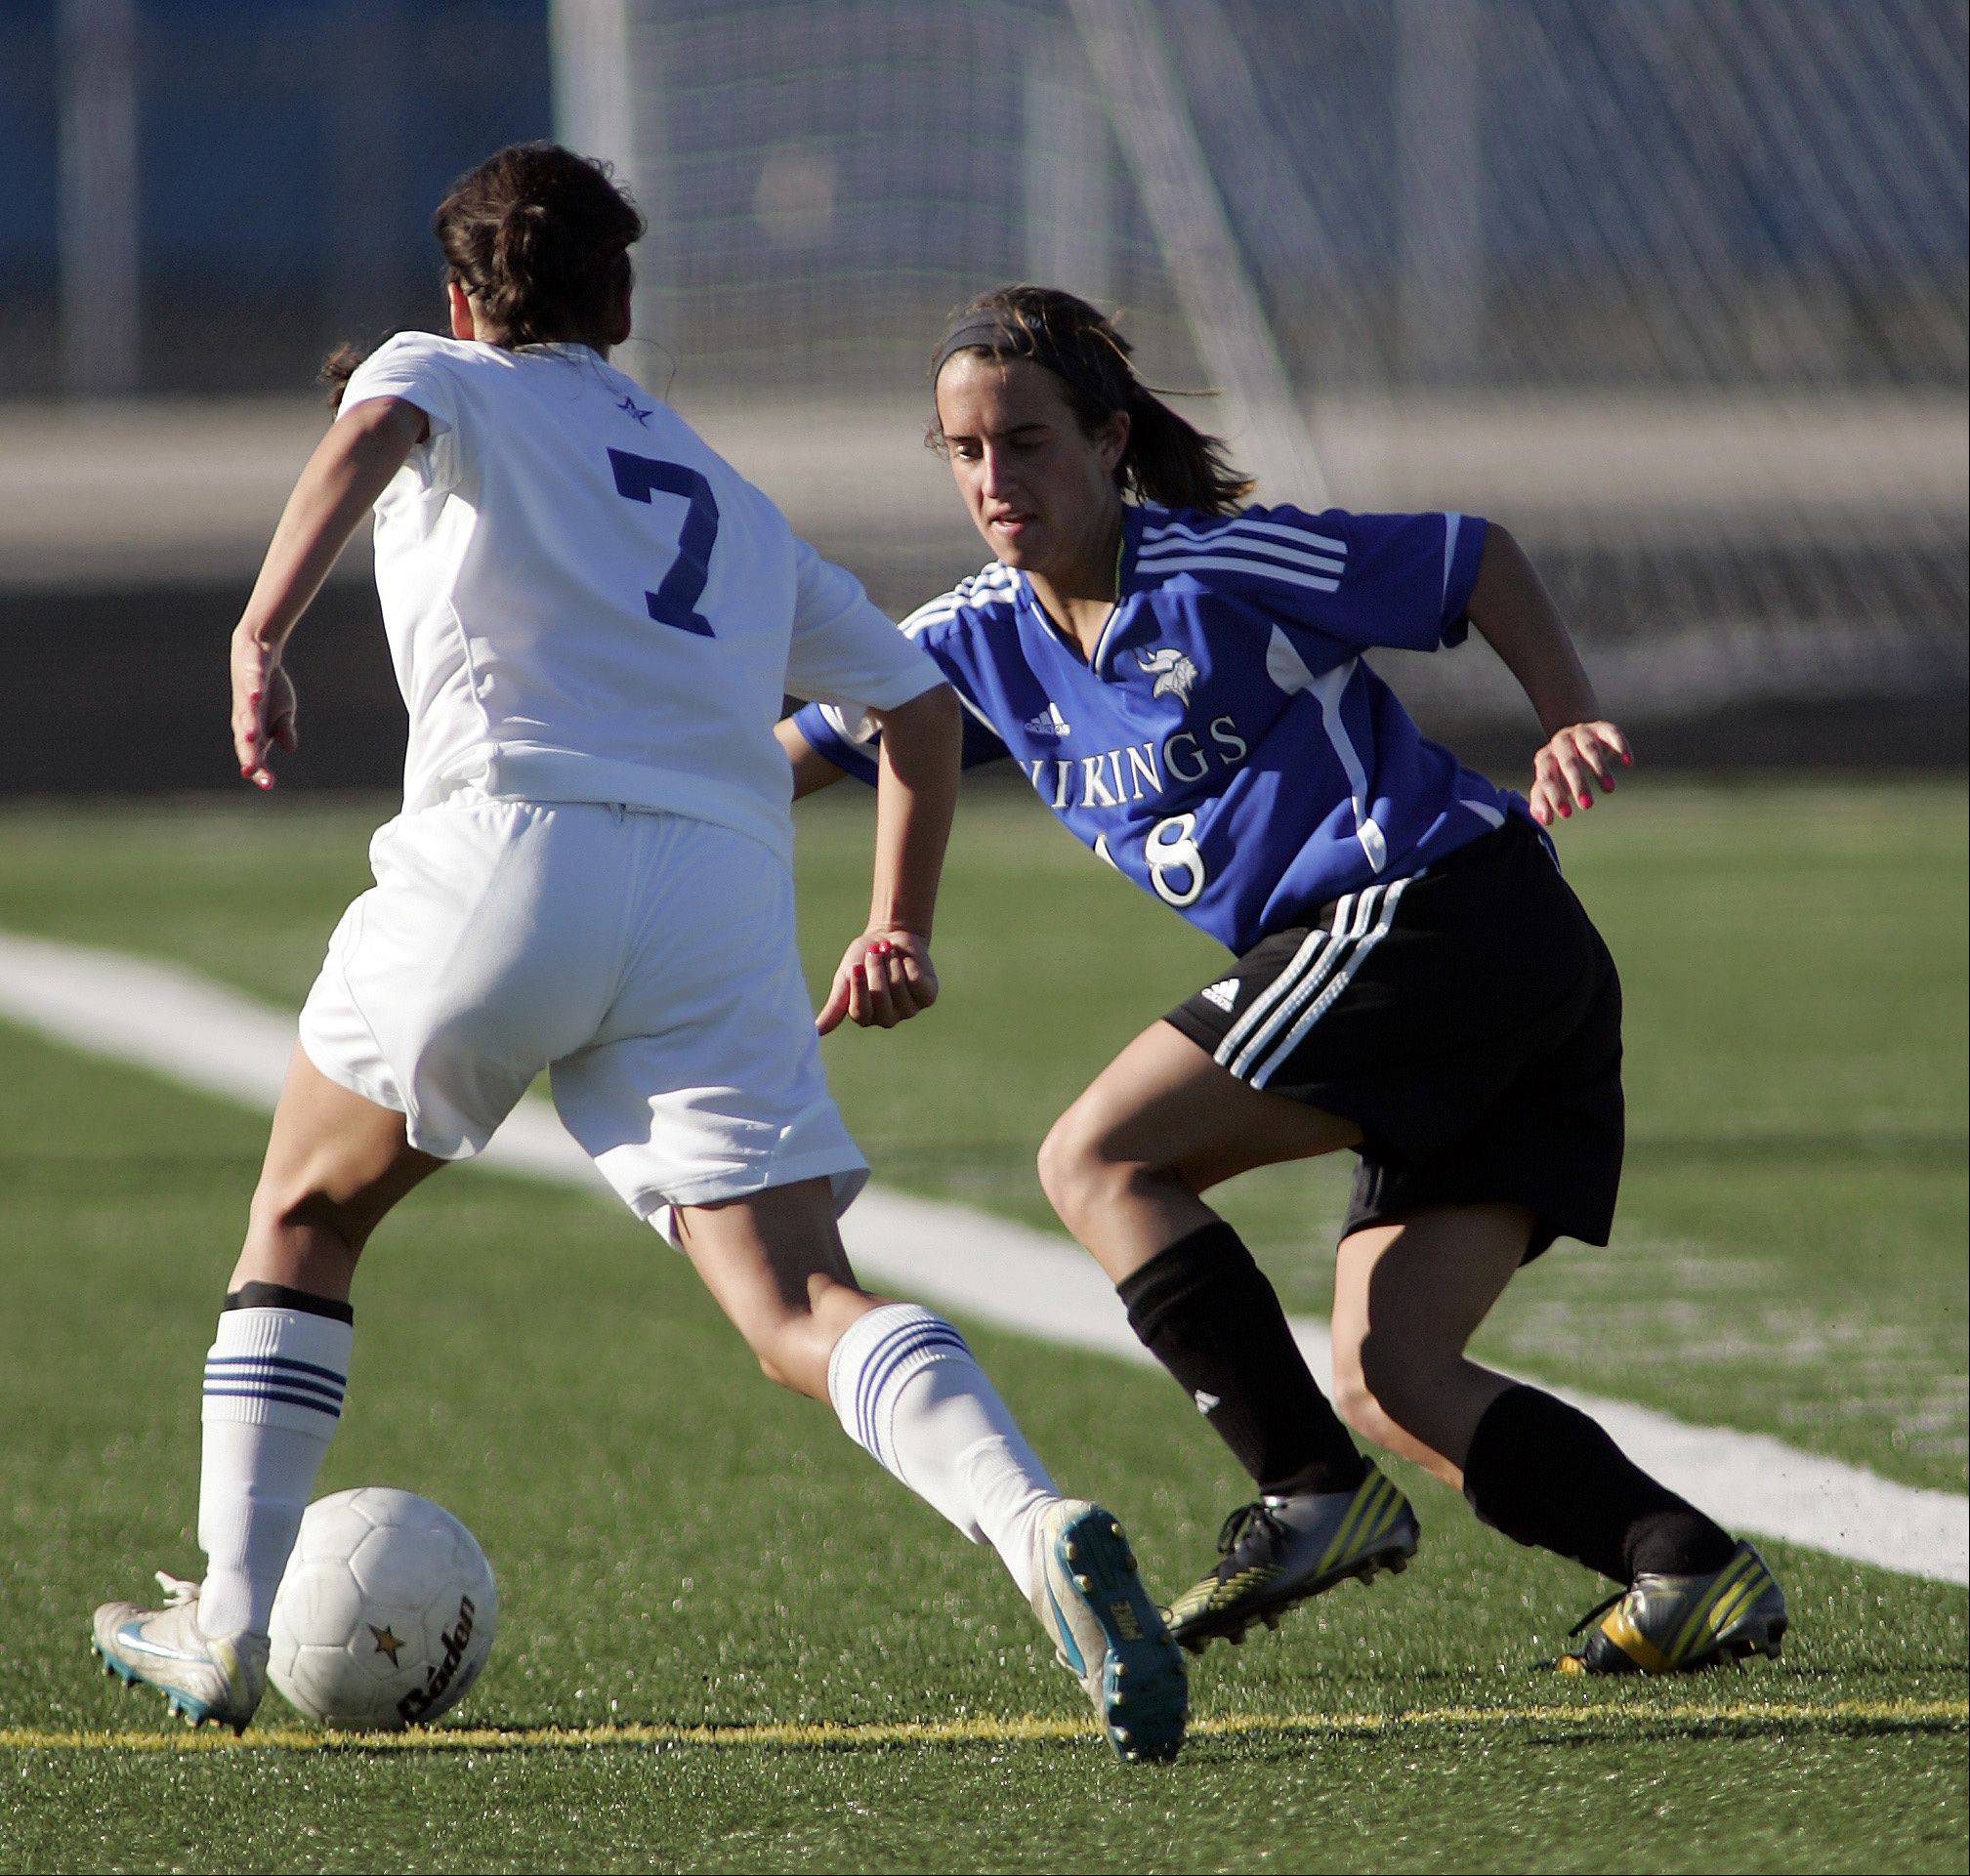 St. Charles North's Ashlyn Walter (7) works around Geneva defender Molly Stanfa (18) during the IHSA Girl's 3A Sectional Soccer Tournament Friday at Hoffman Estates High School.